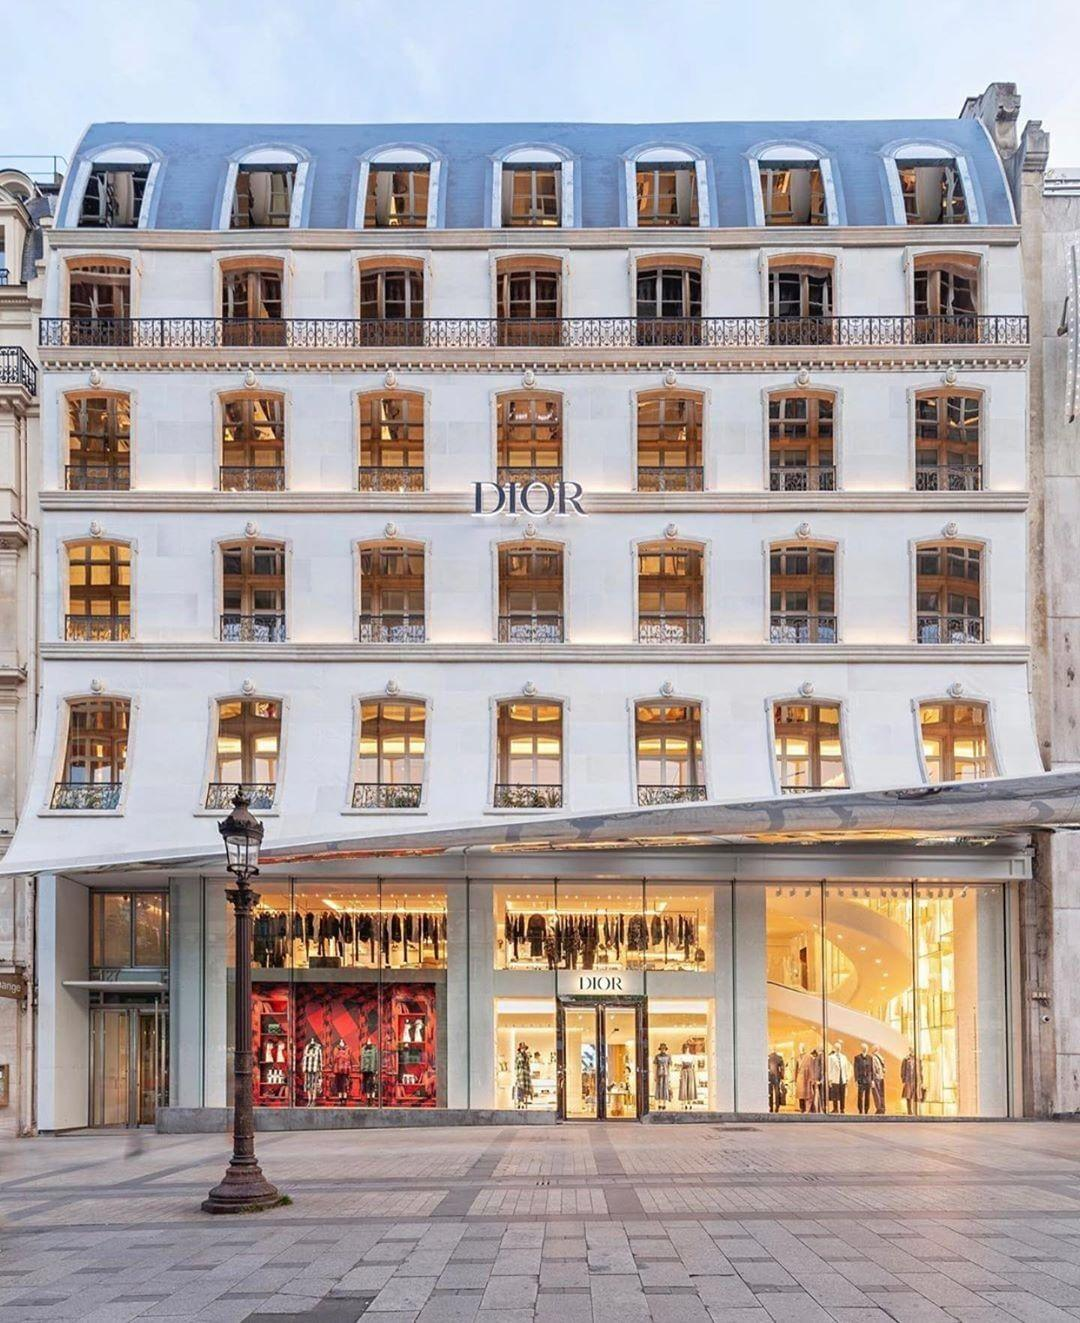 The new Dior store on the Champs Élysées